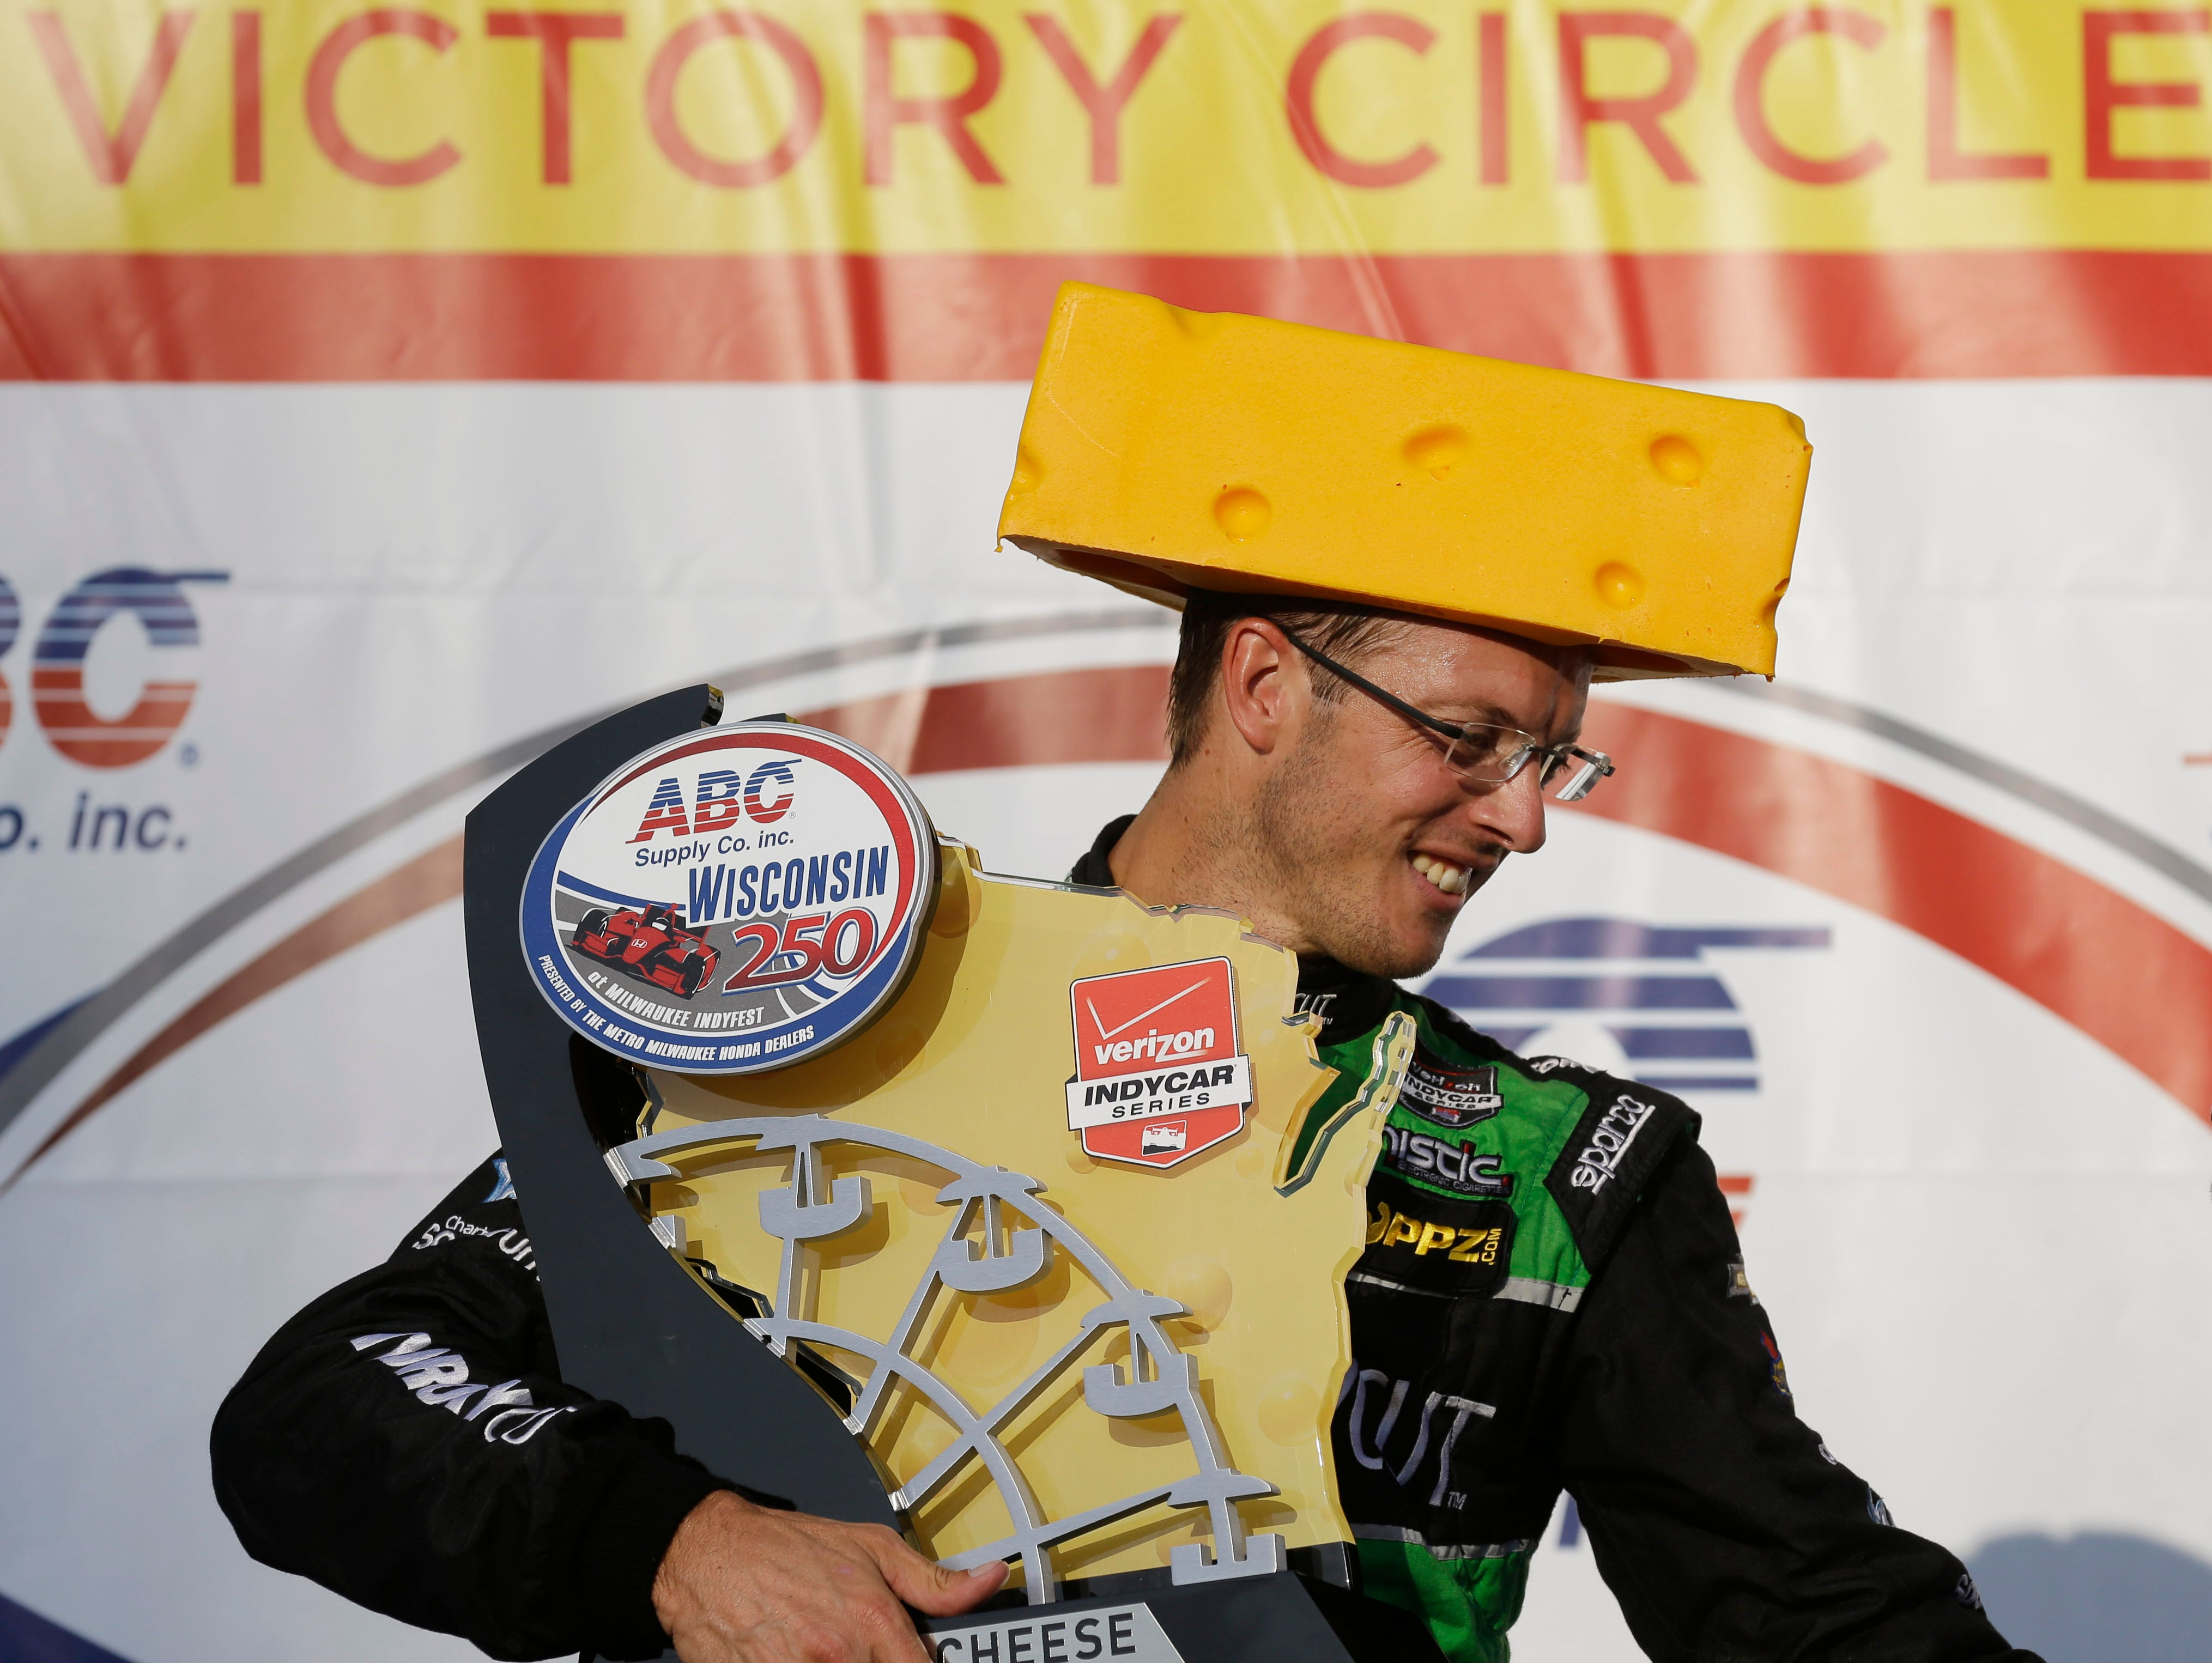 Sebastian Bourdais ,. of France, wears a cheese head hat and gets the winners trophy after the IndyCar Series race at the Milwaukee Mile in West Allis, Wis., Sunday, July 12, 2015.